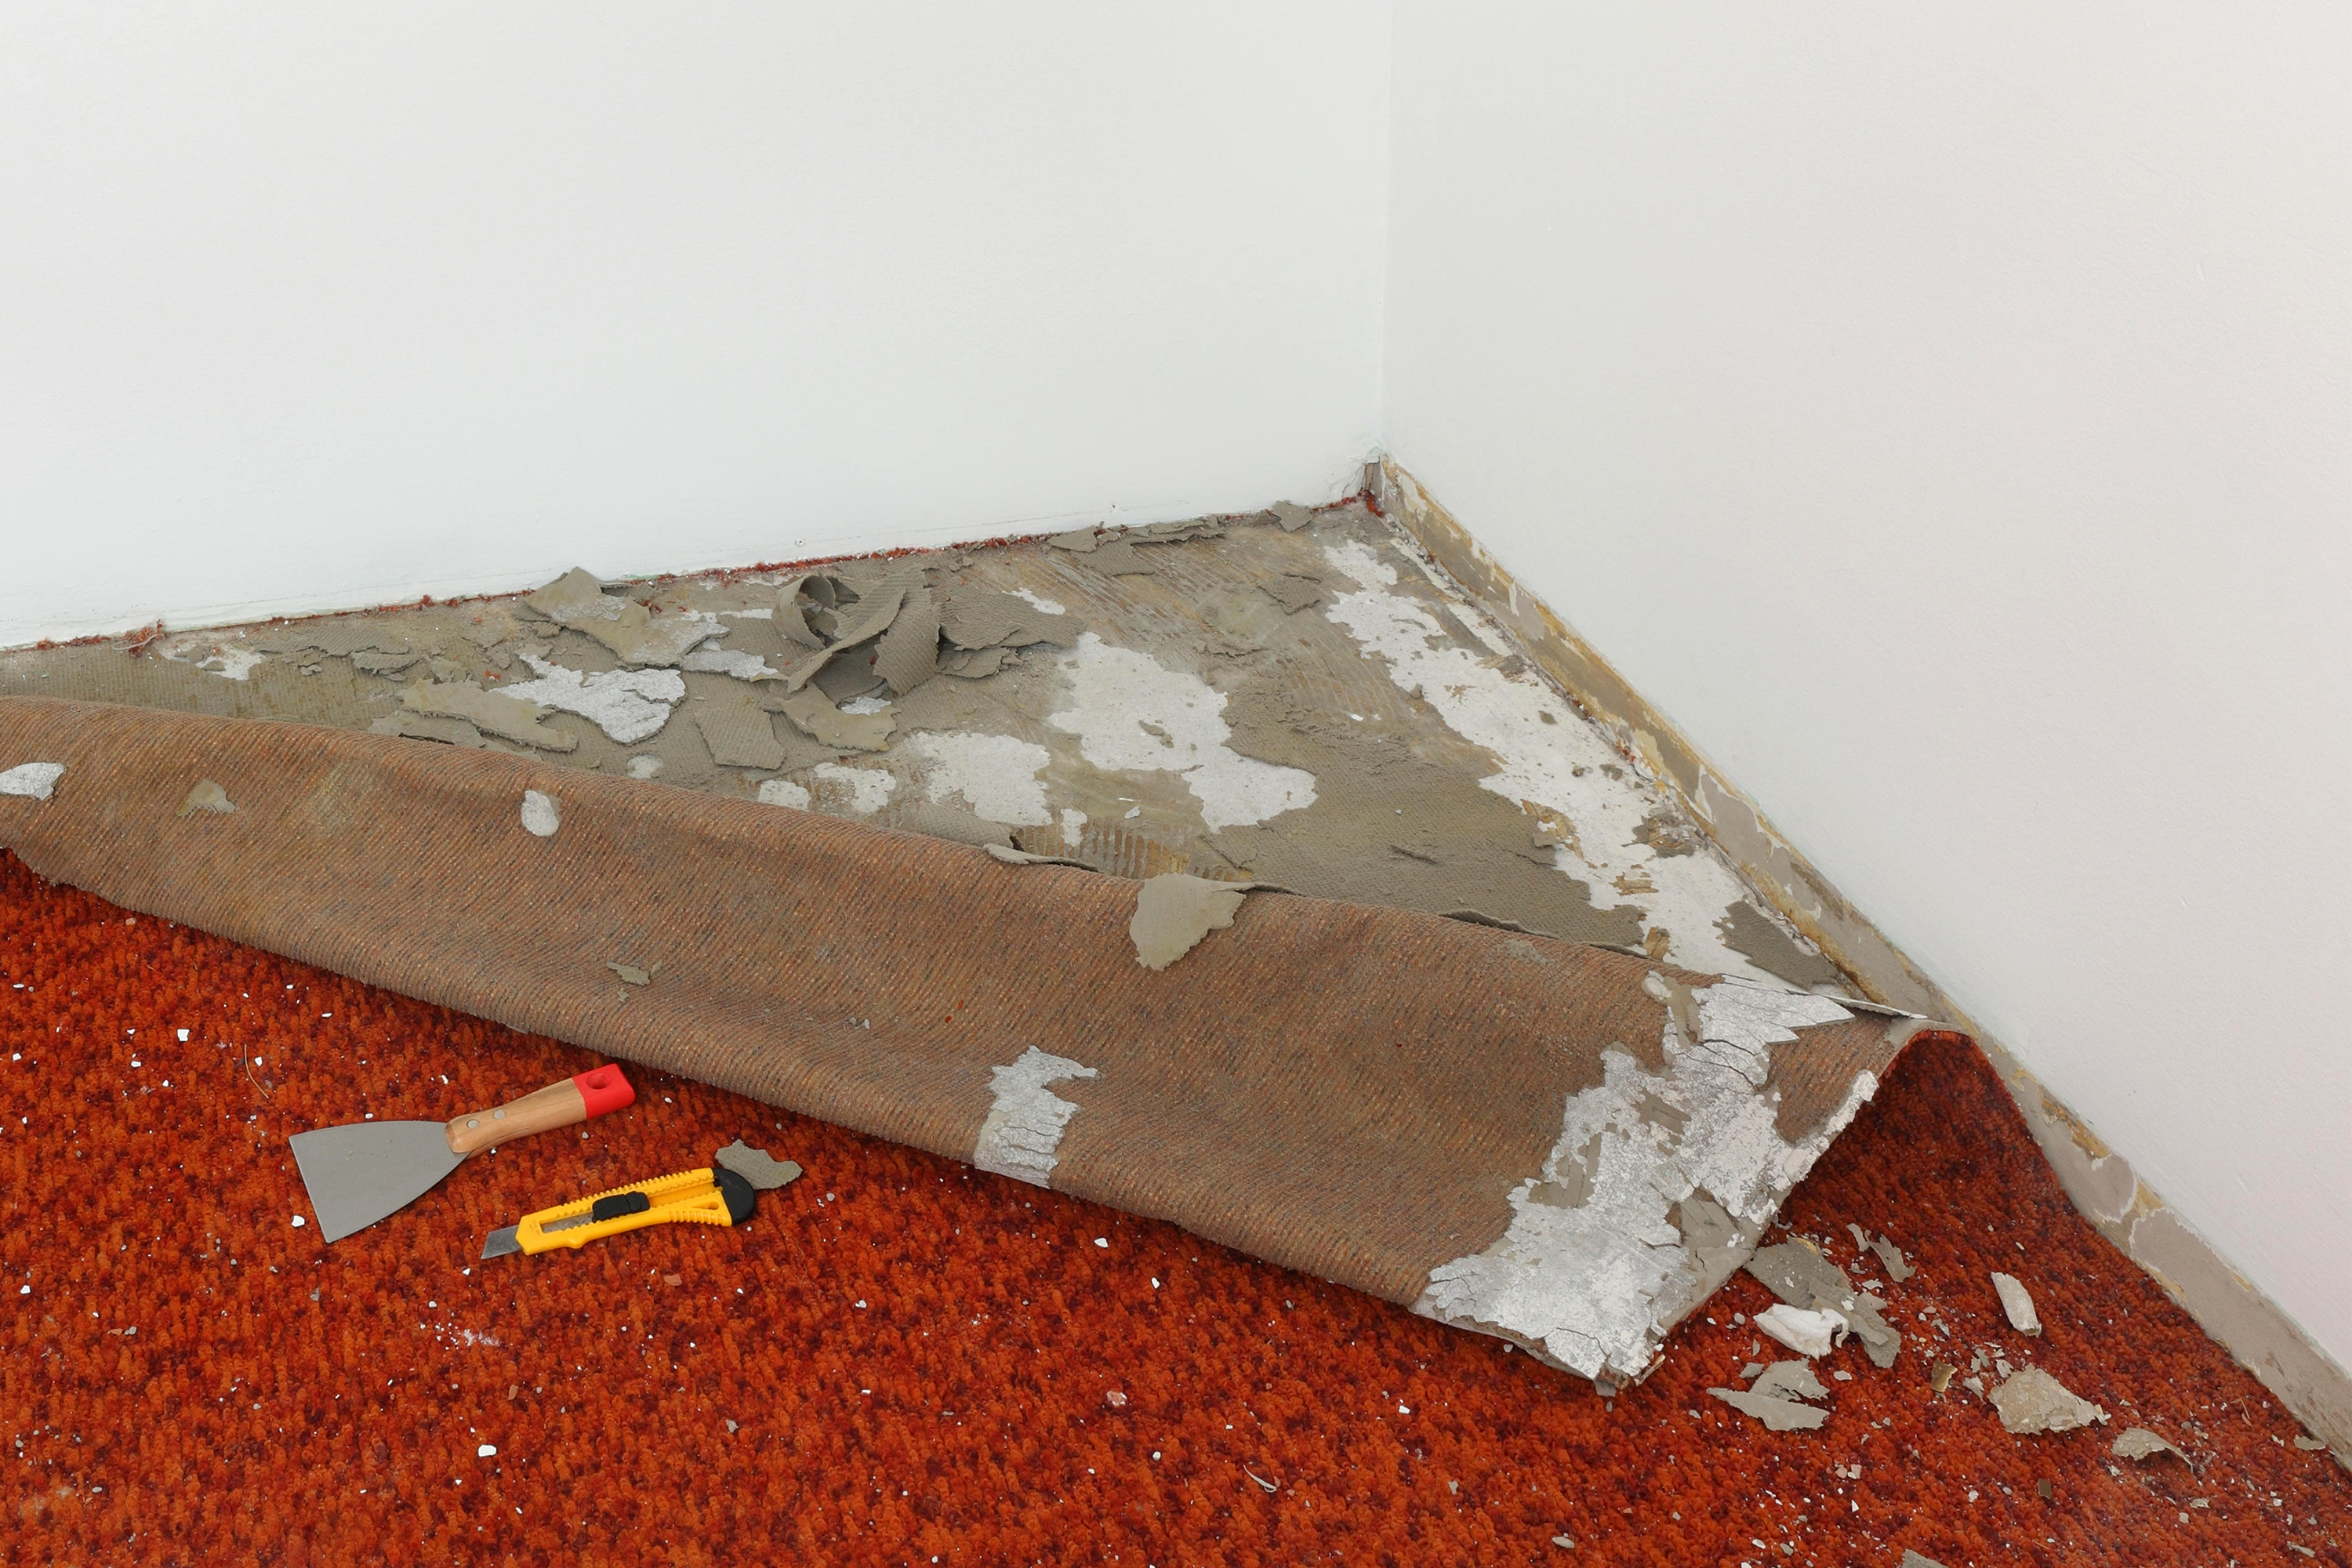 Carpet being removed.